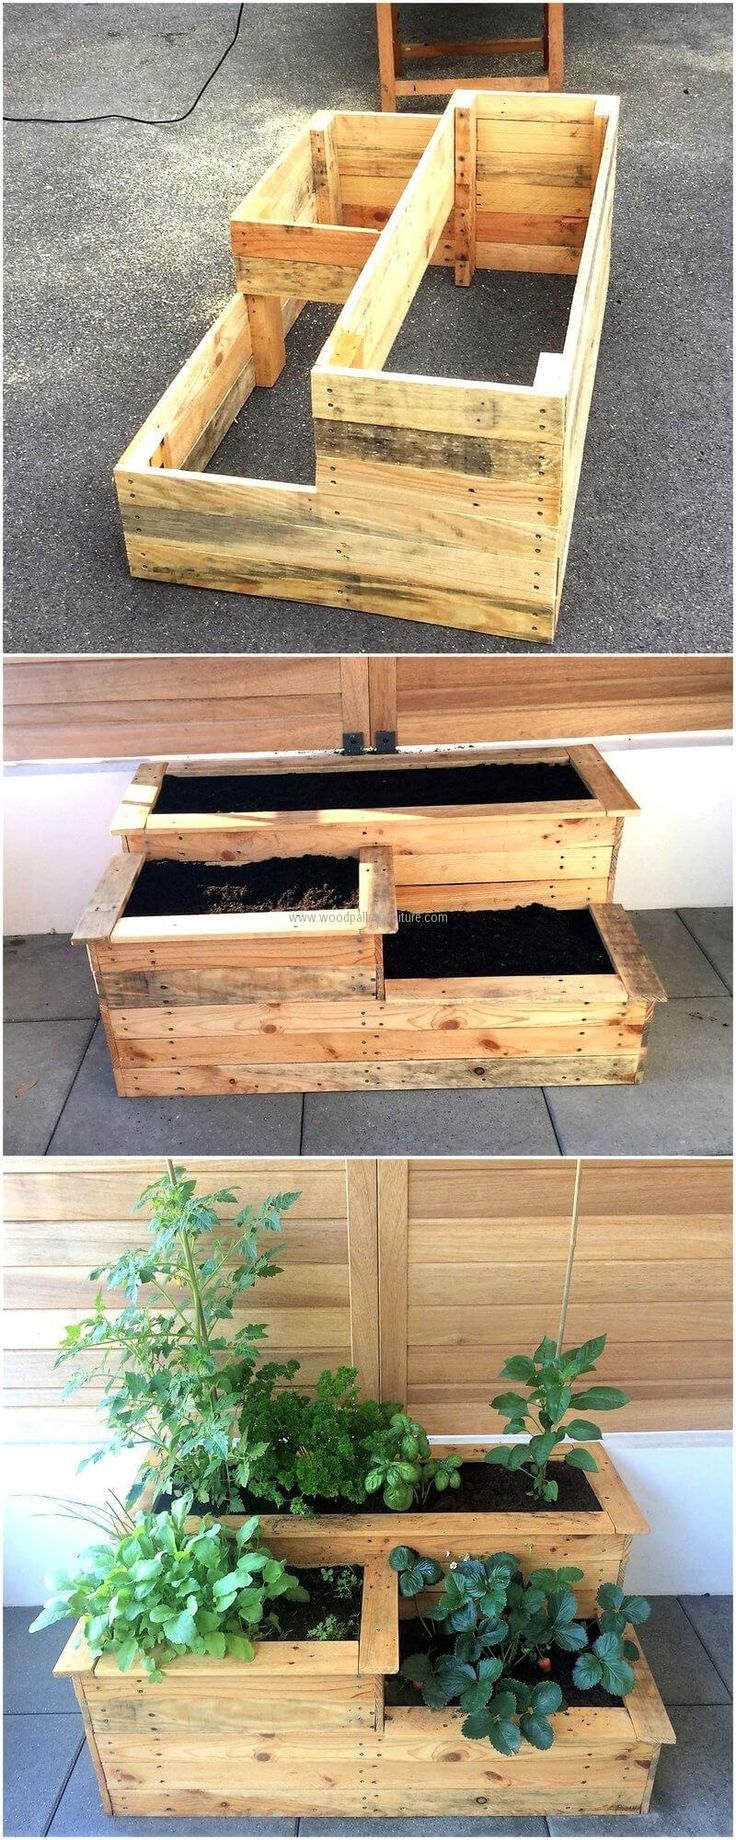 For the decoration lovers, here is an idea for decorating the home in a unique way with the repurposed wood pallet planter in which the flower of different colors can be placed for the appealing look. There are 3 layers in the planter and as many planters can be created as required for the decoration. Home Decor